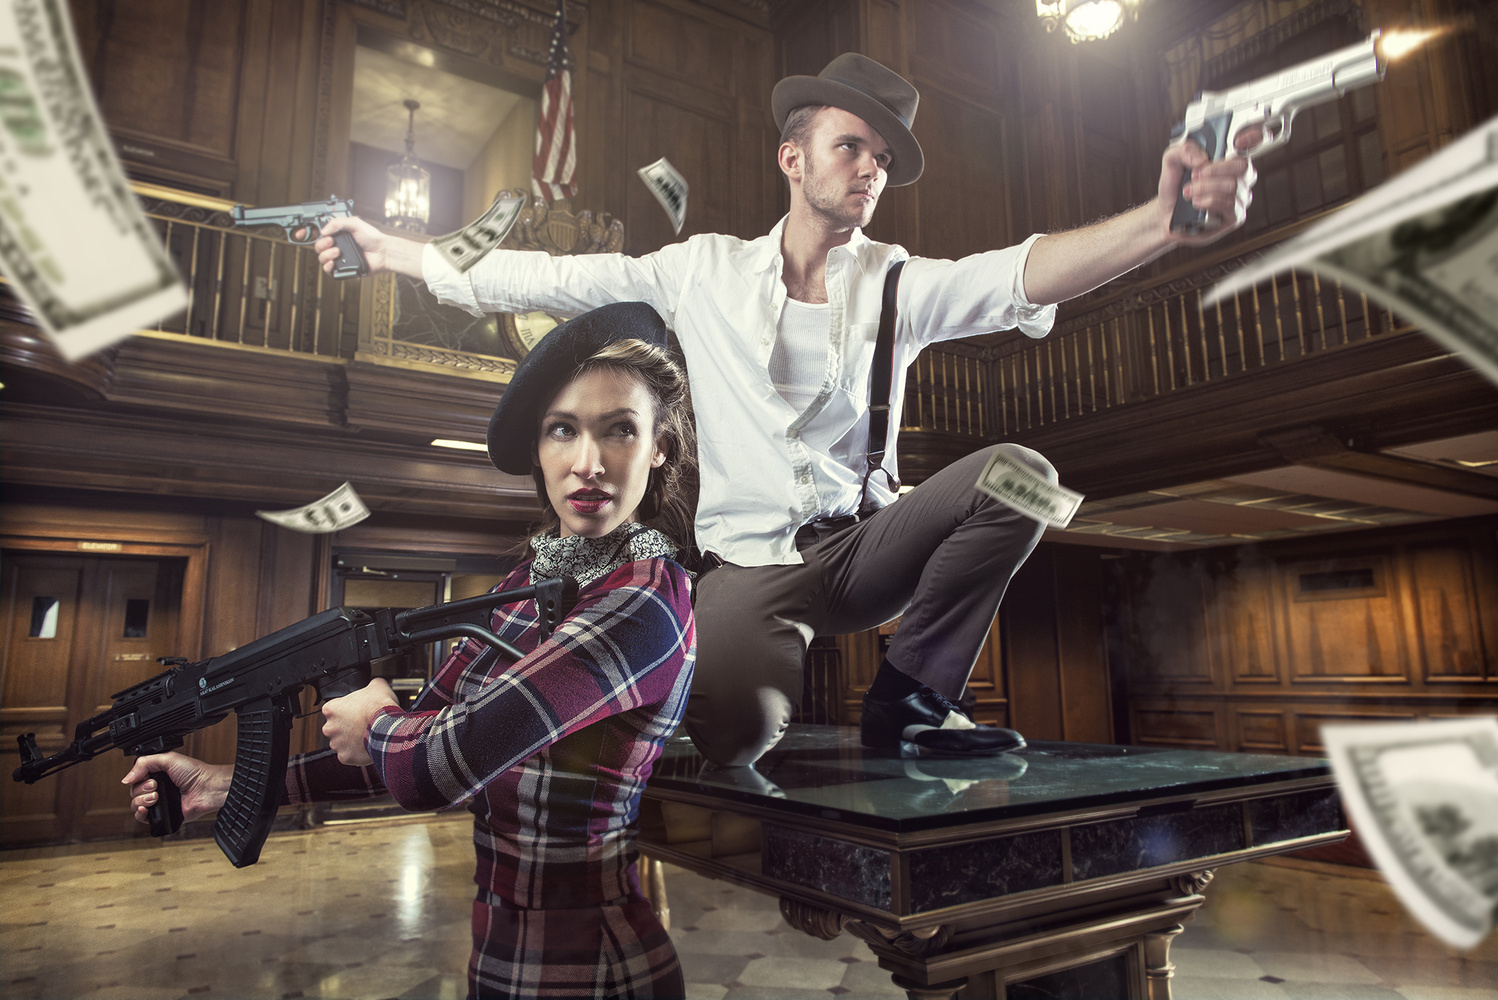 bonnie and clyde by Robert Wagner